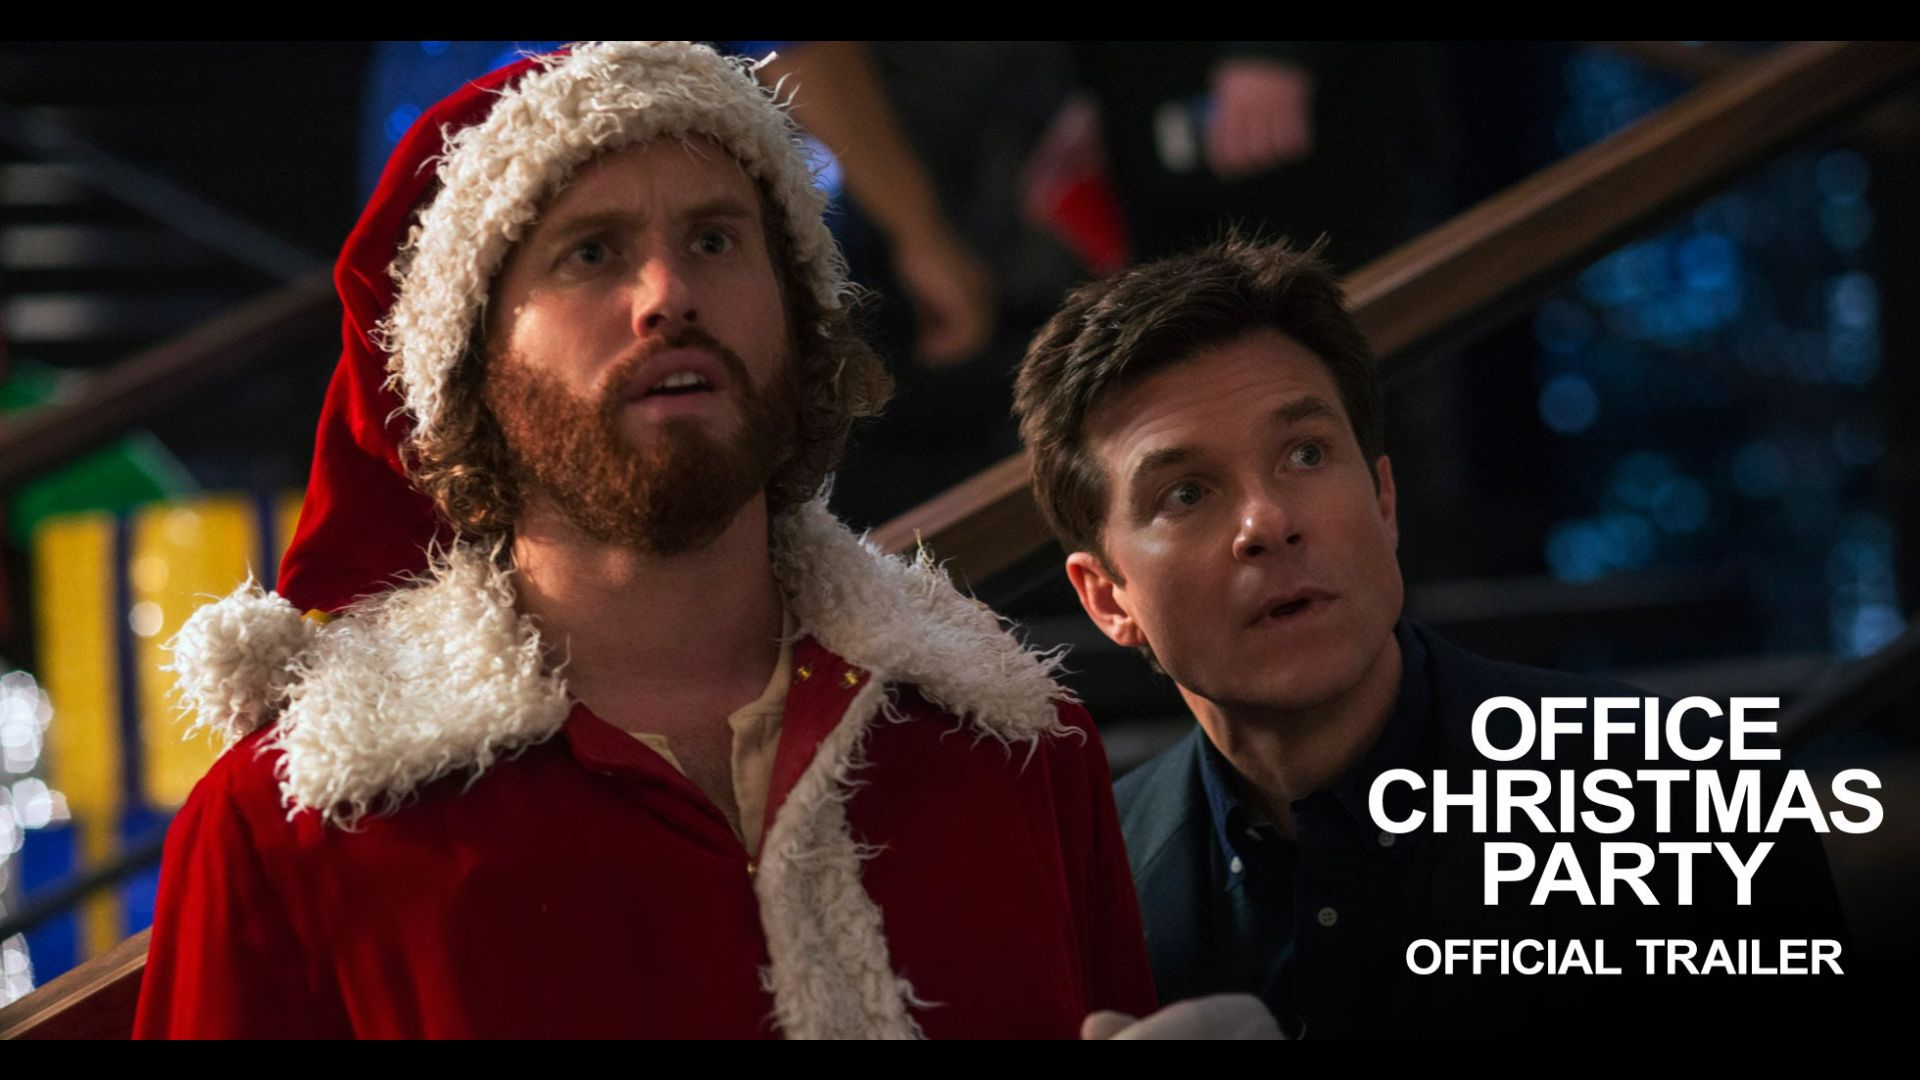 Office Christmas Party Trailer (2016)